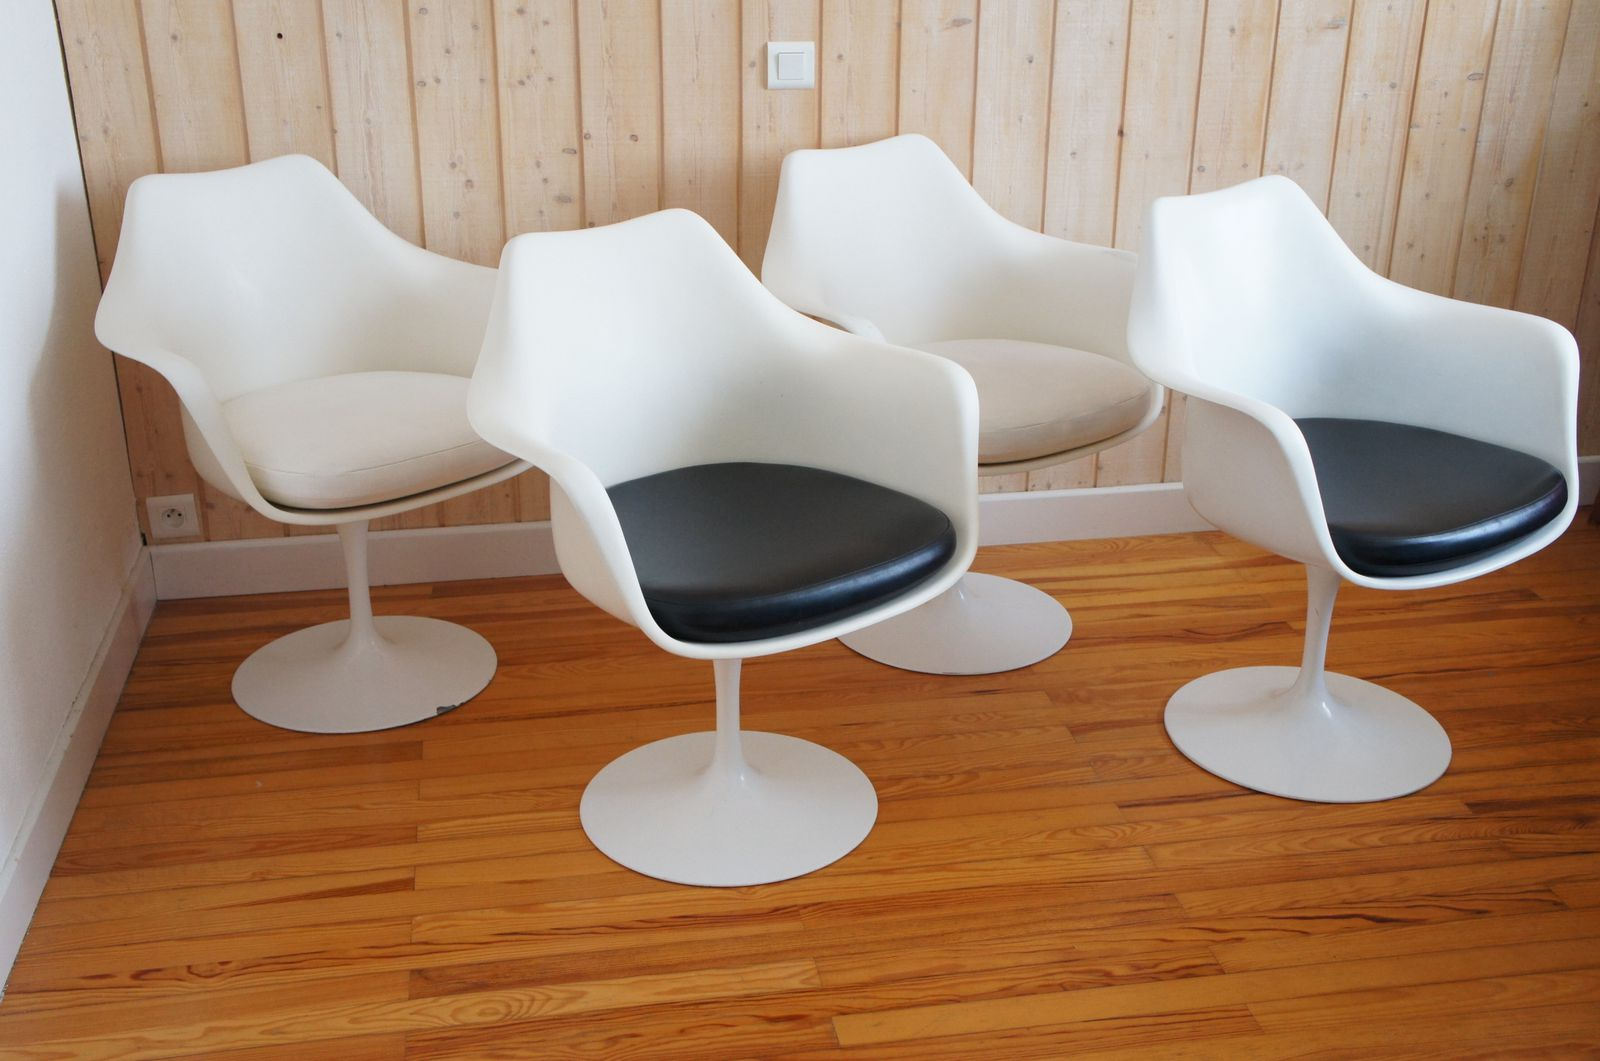 Fauteuils tulipes eero saarinen knoll international design vintage ann es 60 - Fauteuil knoll tulipe ...